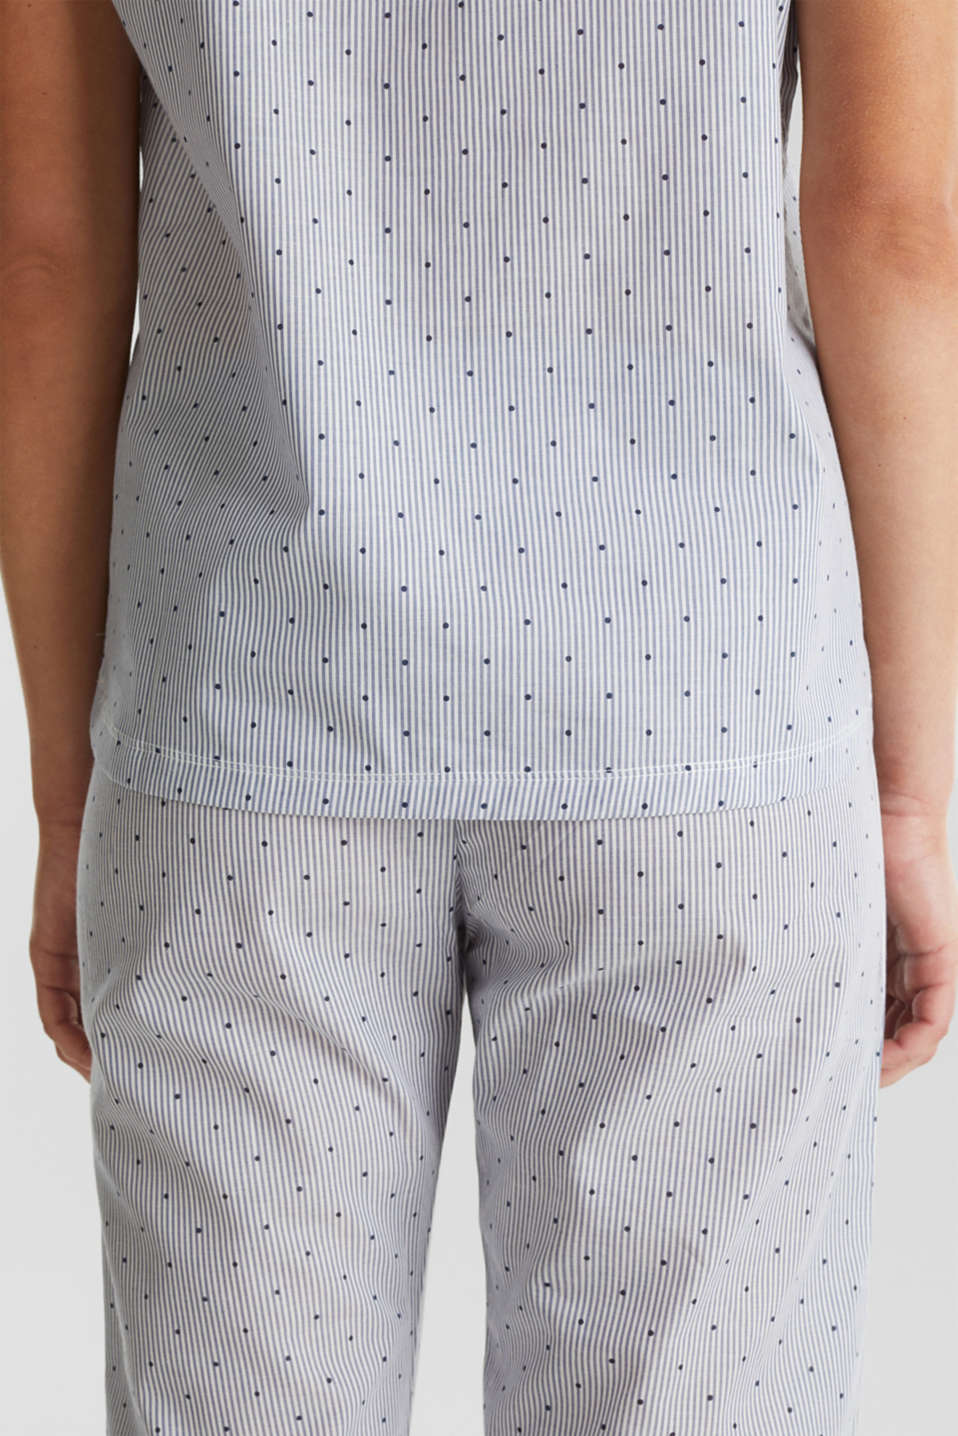 Woven pyjamas with a mixed pattern, 100% cotton, BLUE LAVENDER, detail image number 3